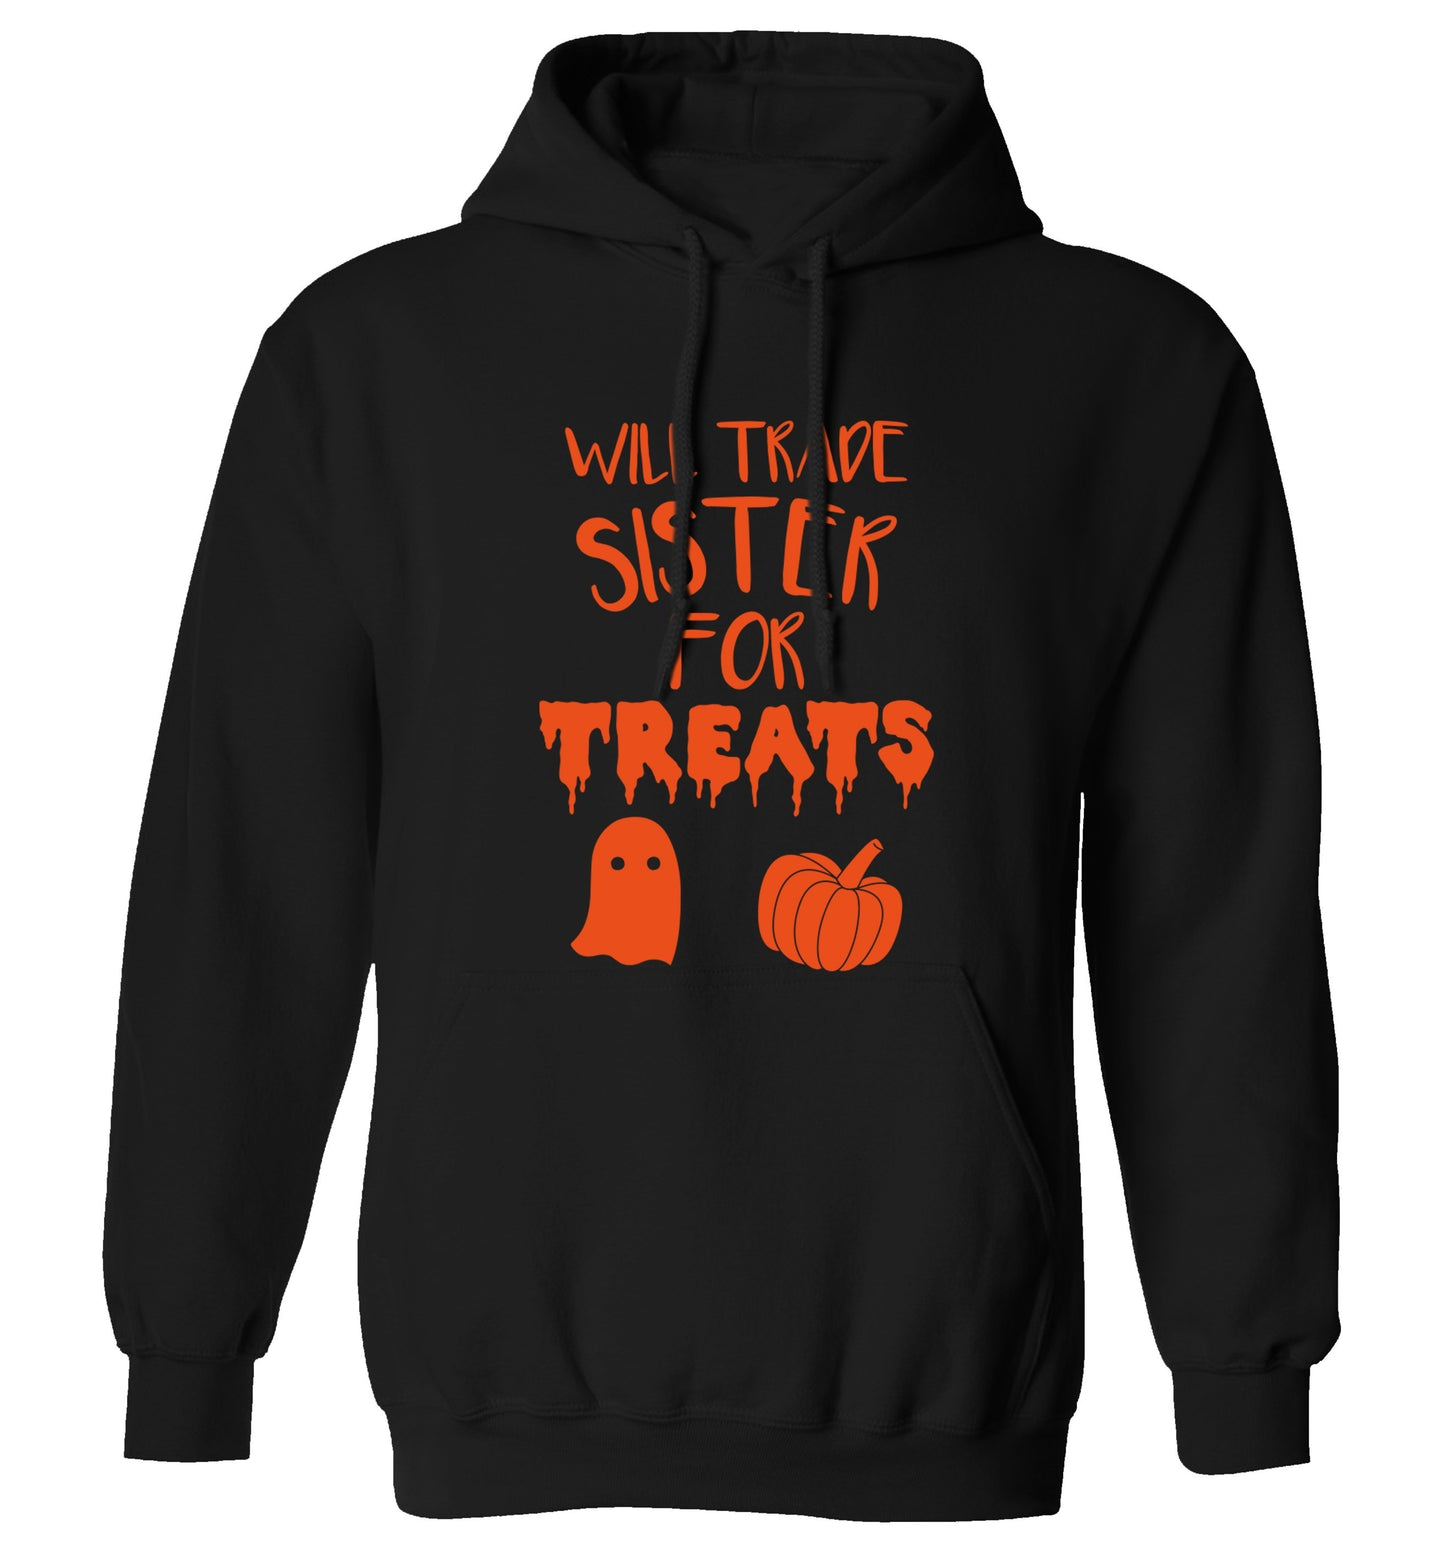 Will trade sister for treats adults unisex black hoodie 2XL